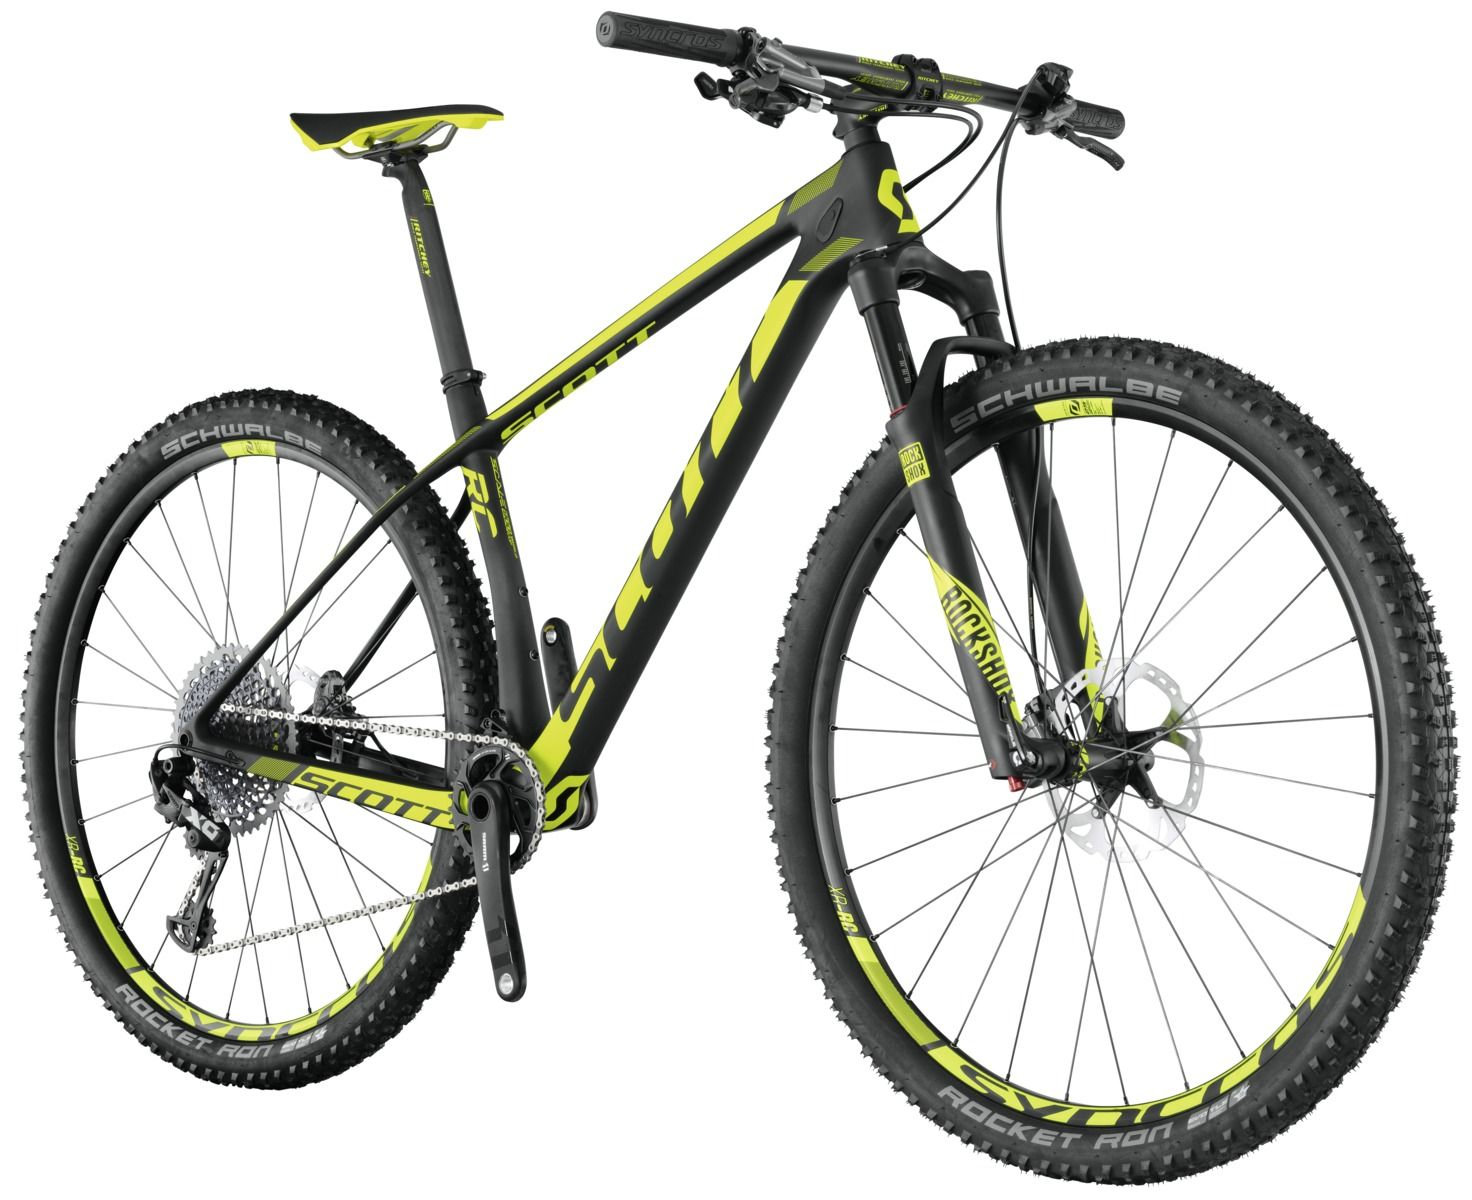 New For 2017 Scott Releases Two Of The Lightest Xc Mountain Bikes In Existence Xc Mountain Bike Hardtail Mountain Bike